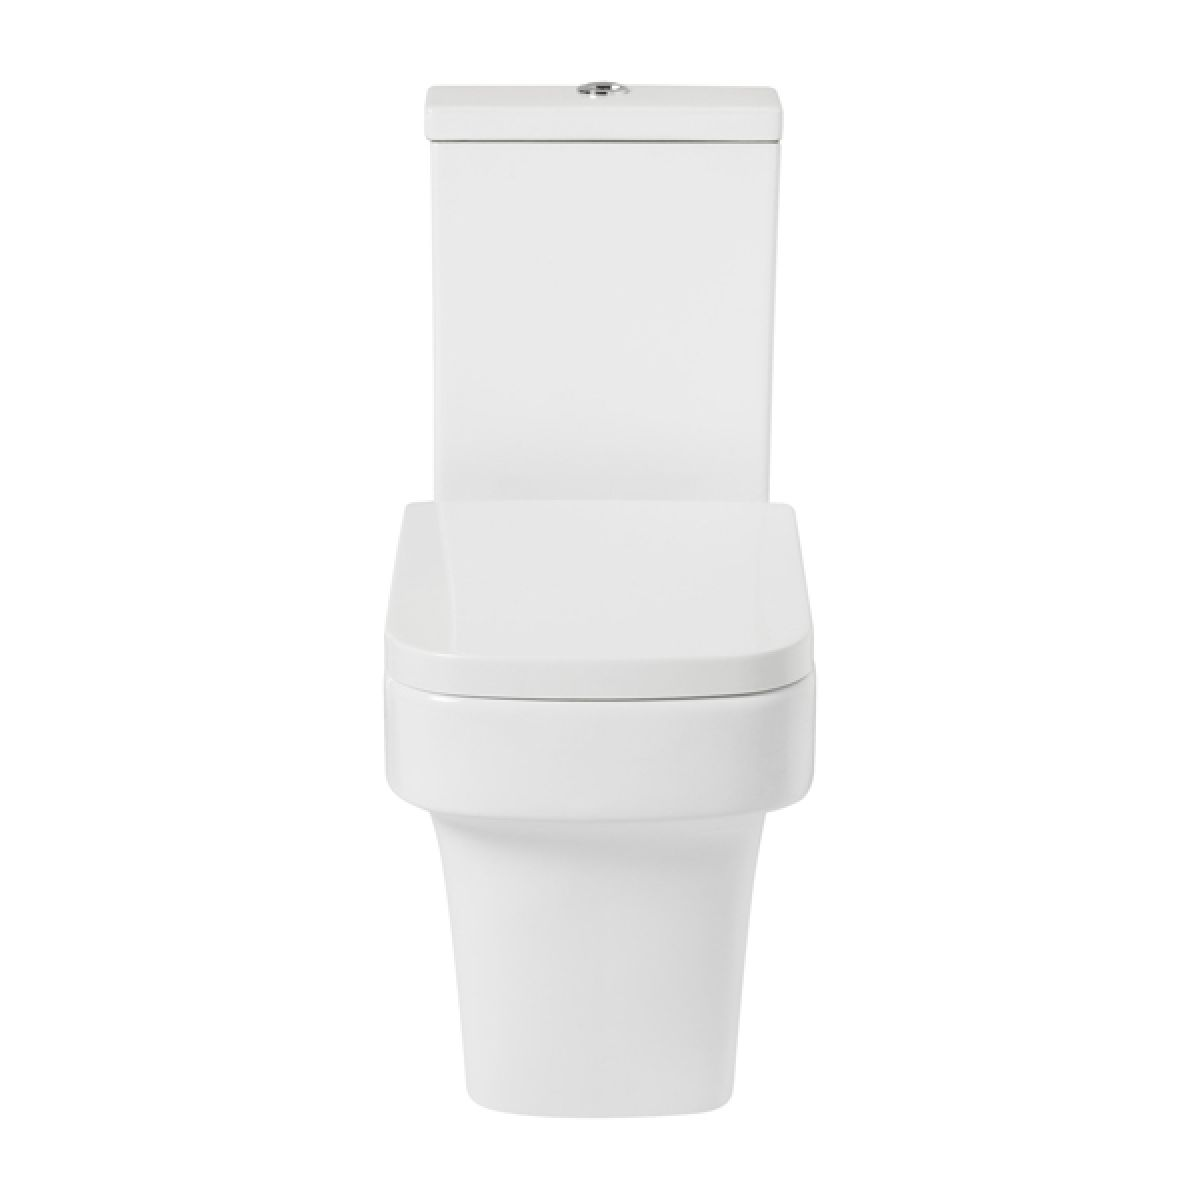 Frontline Medici Close Coupled Toilet with Soft Close Seat